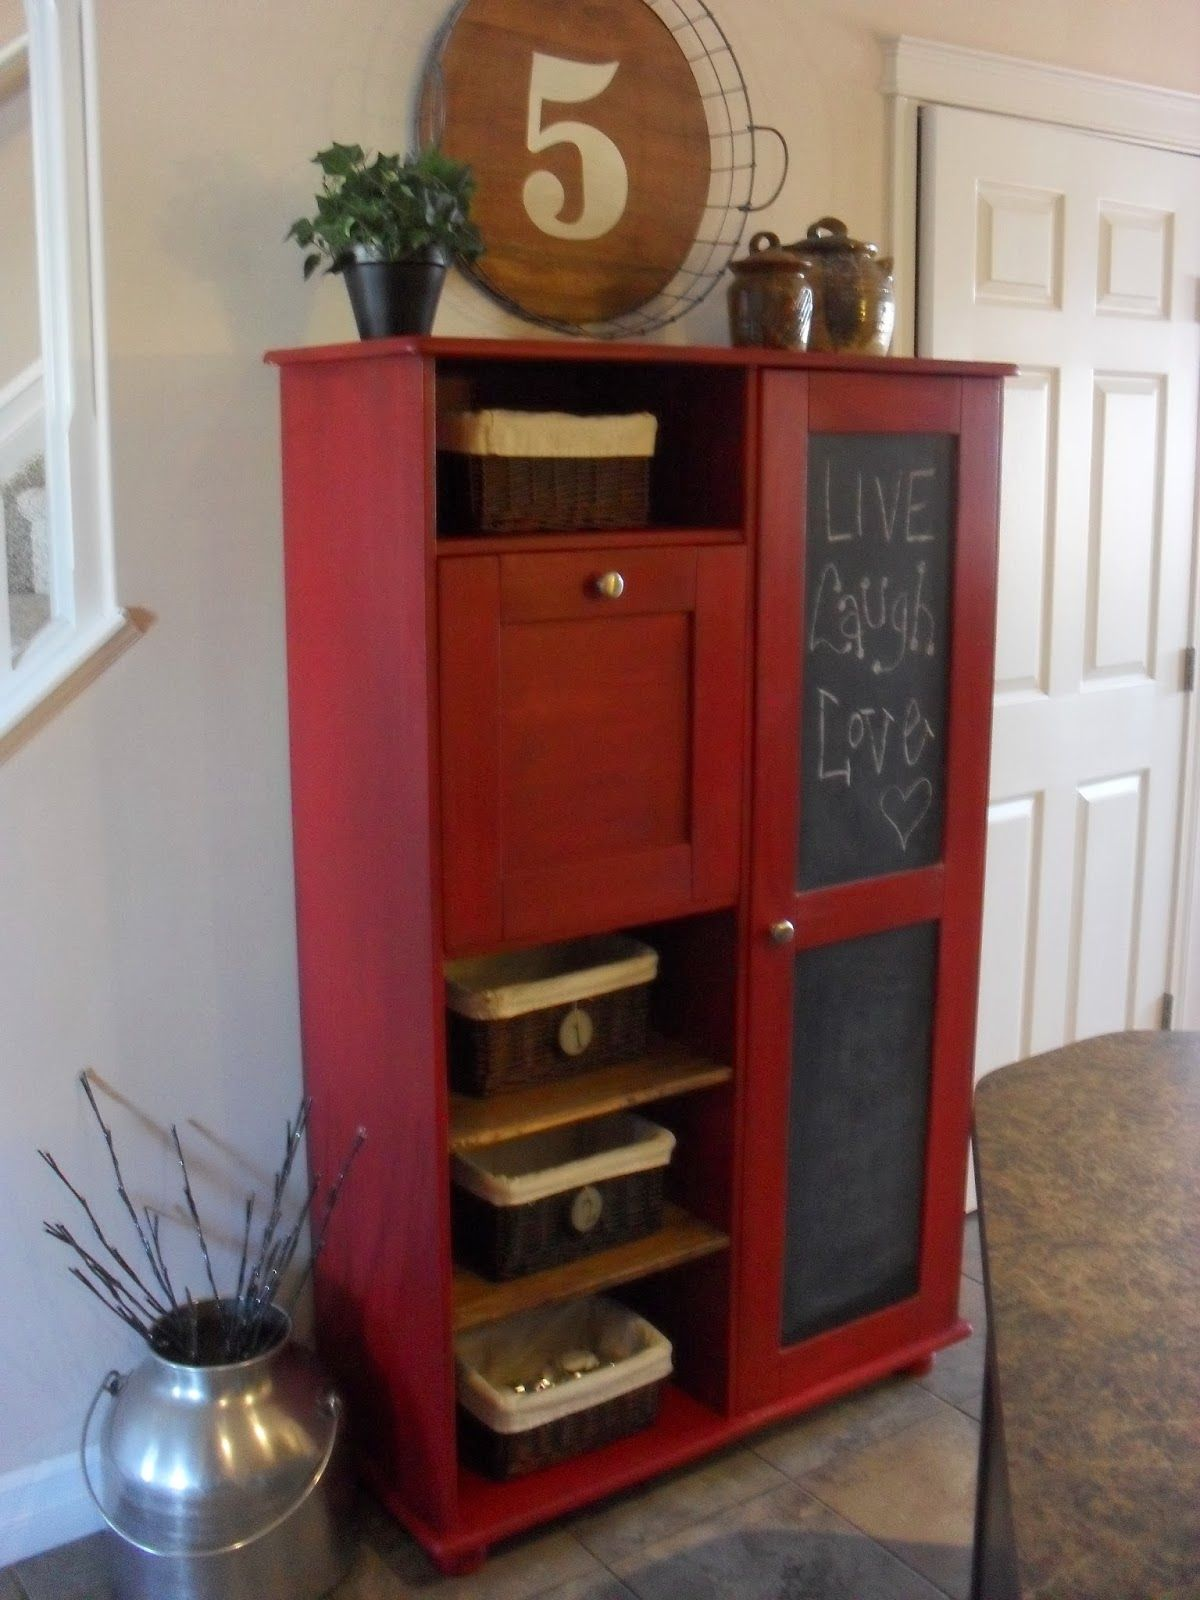 Barn Red Cabinet | Red cabinets, Redo furniture, Red barns